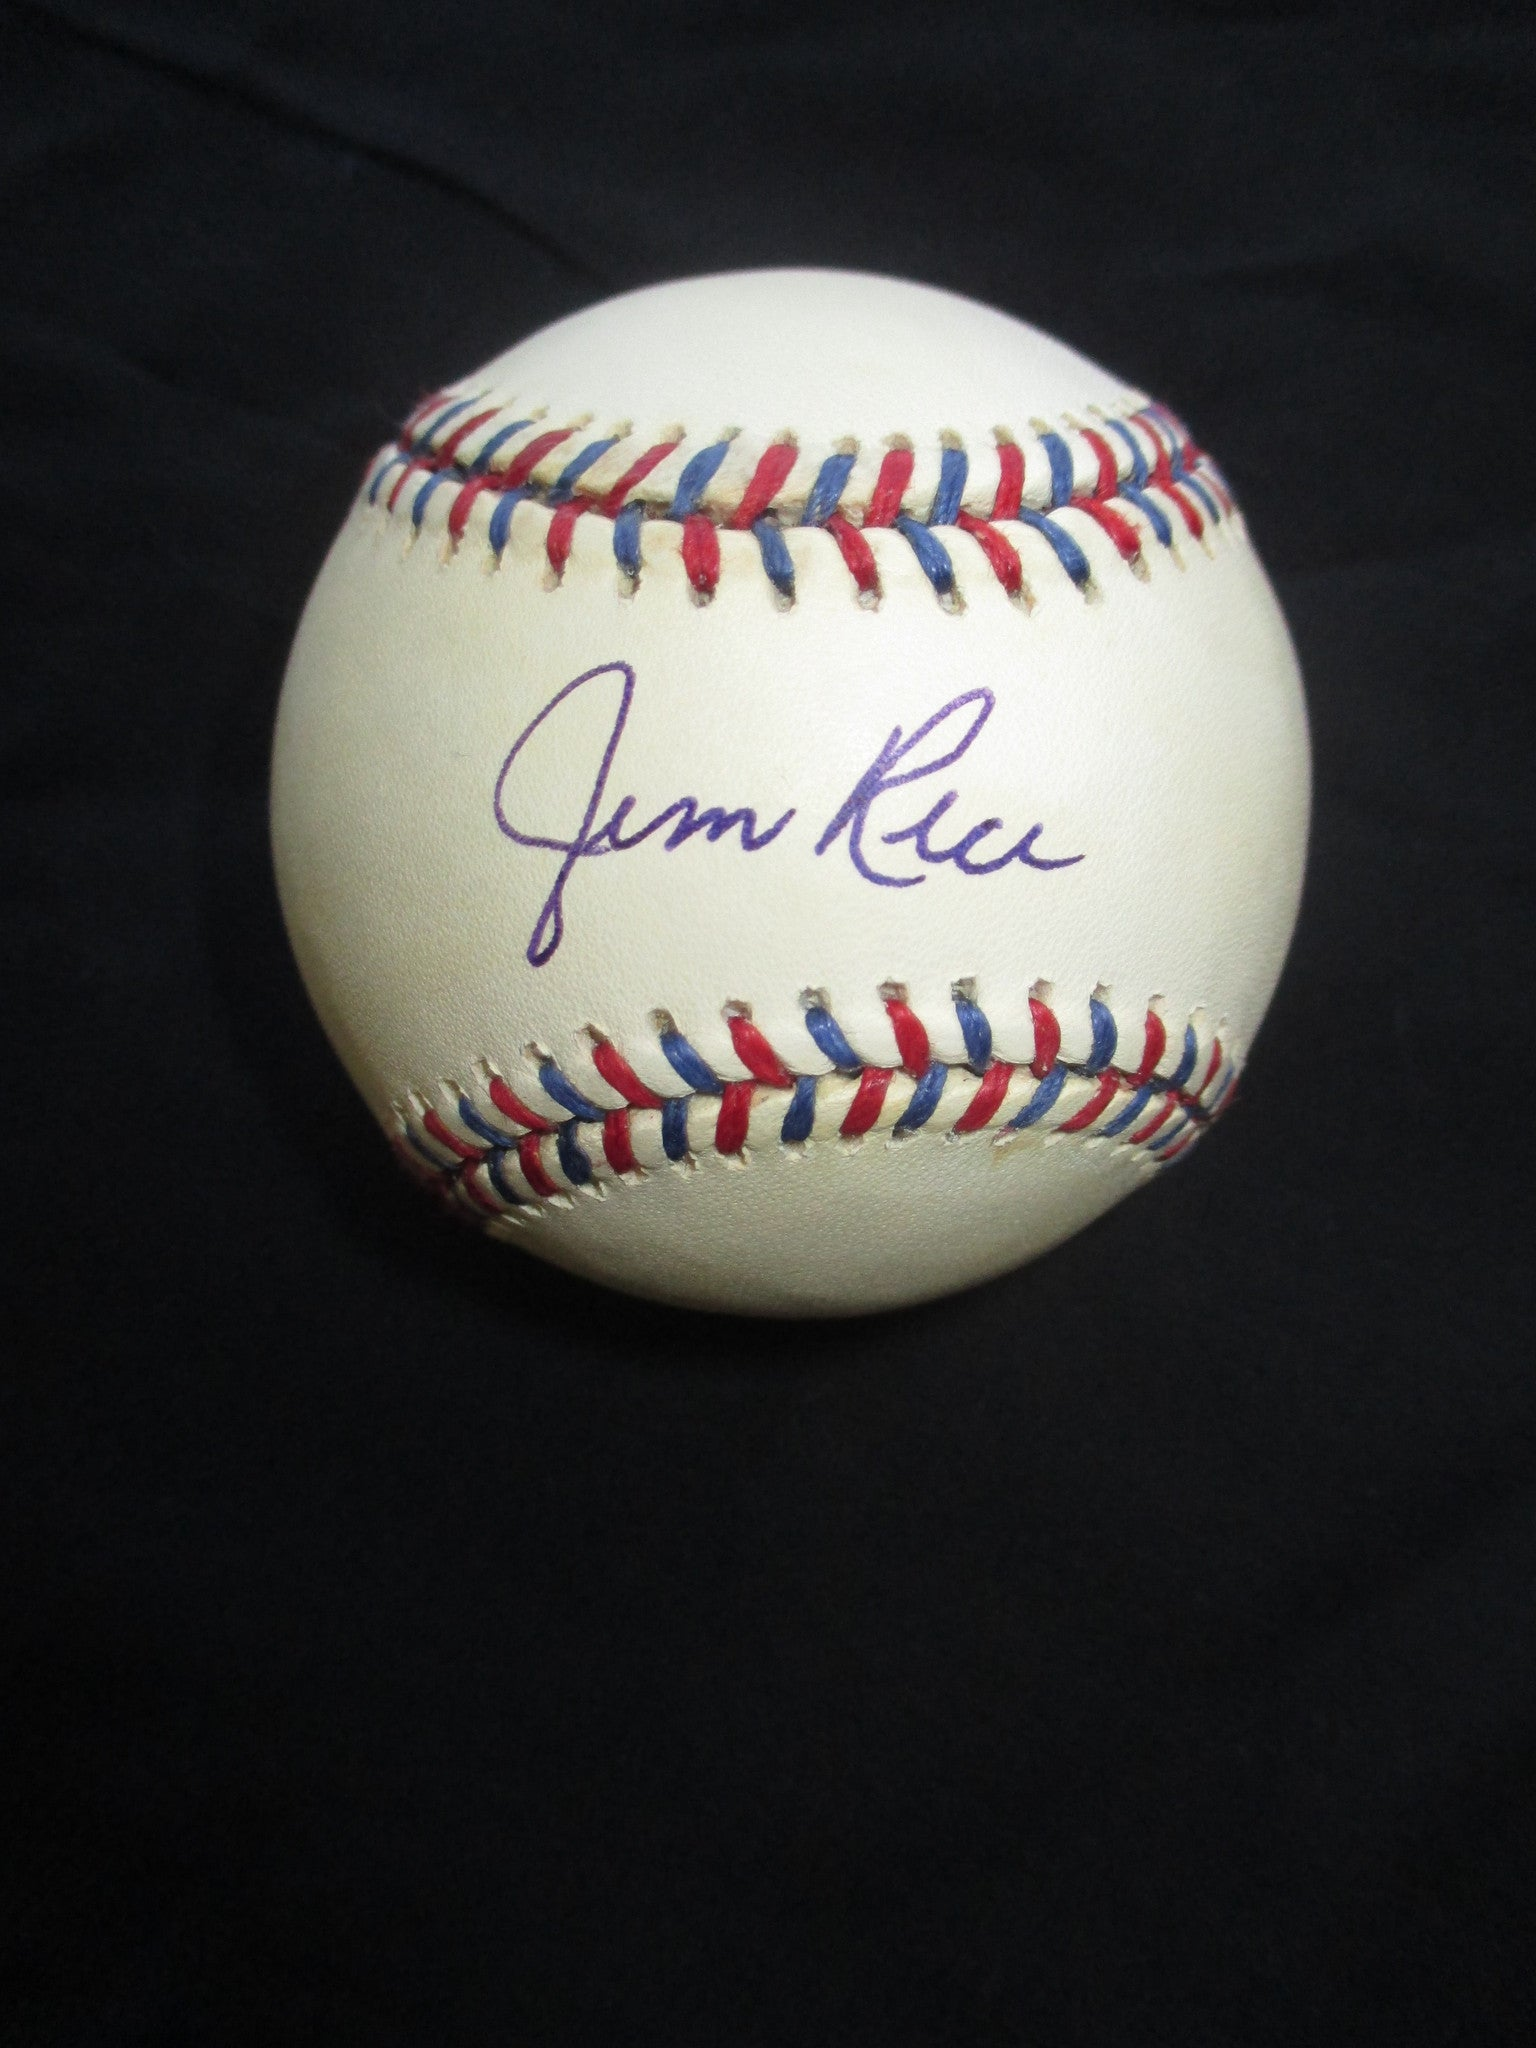 Hand-Signed Jim Rice Baseball